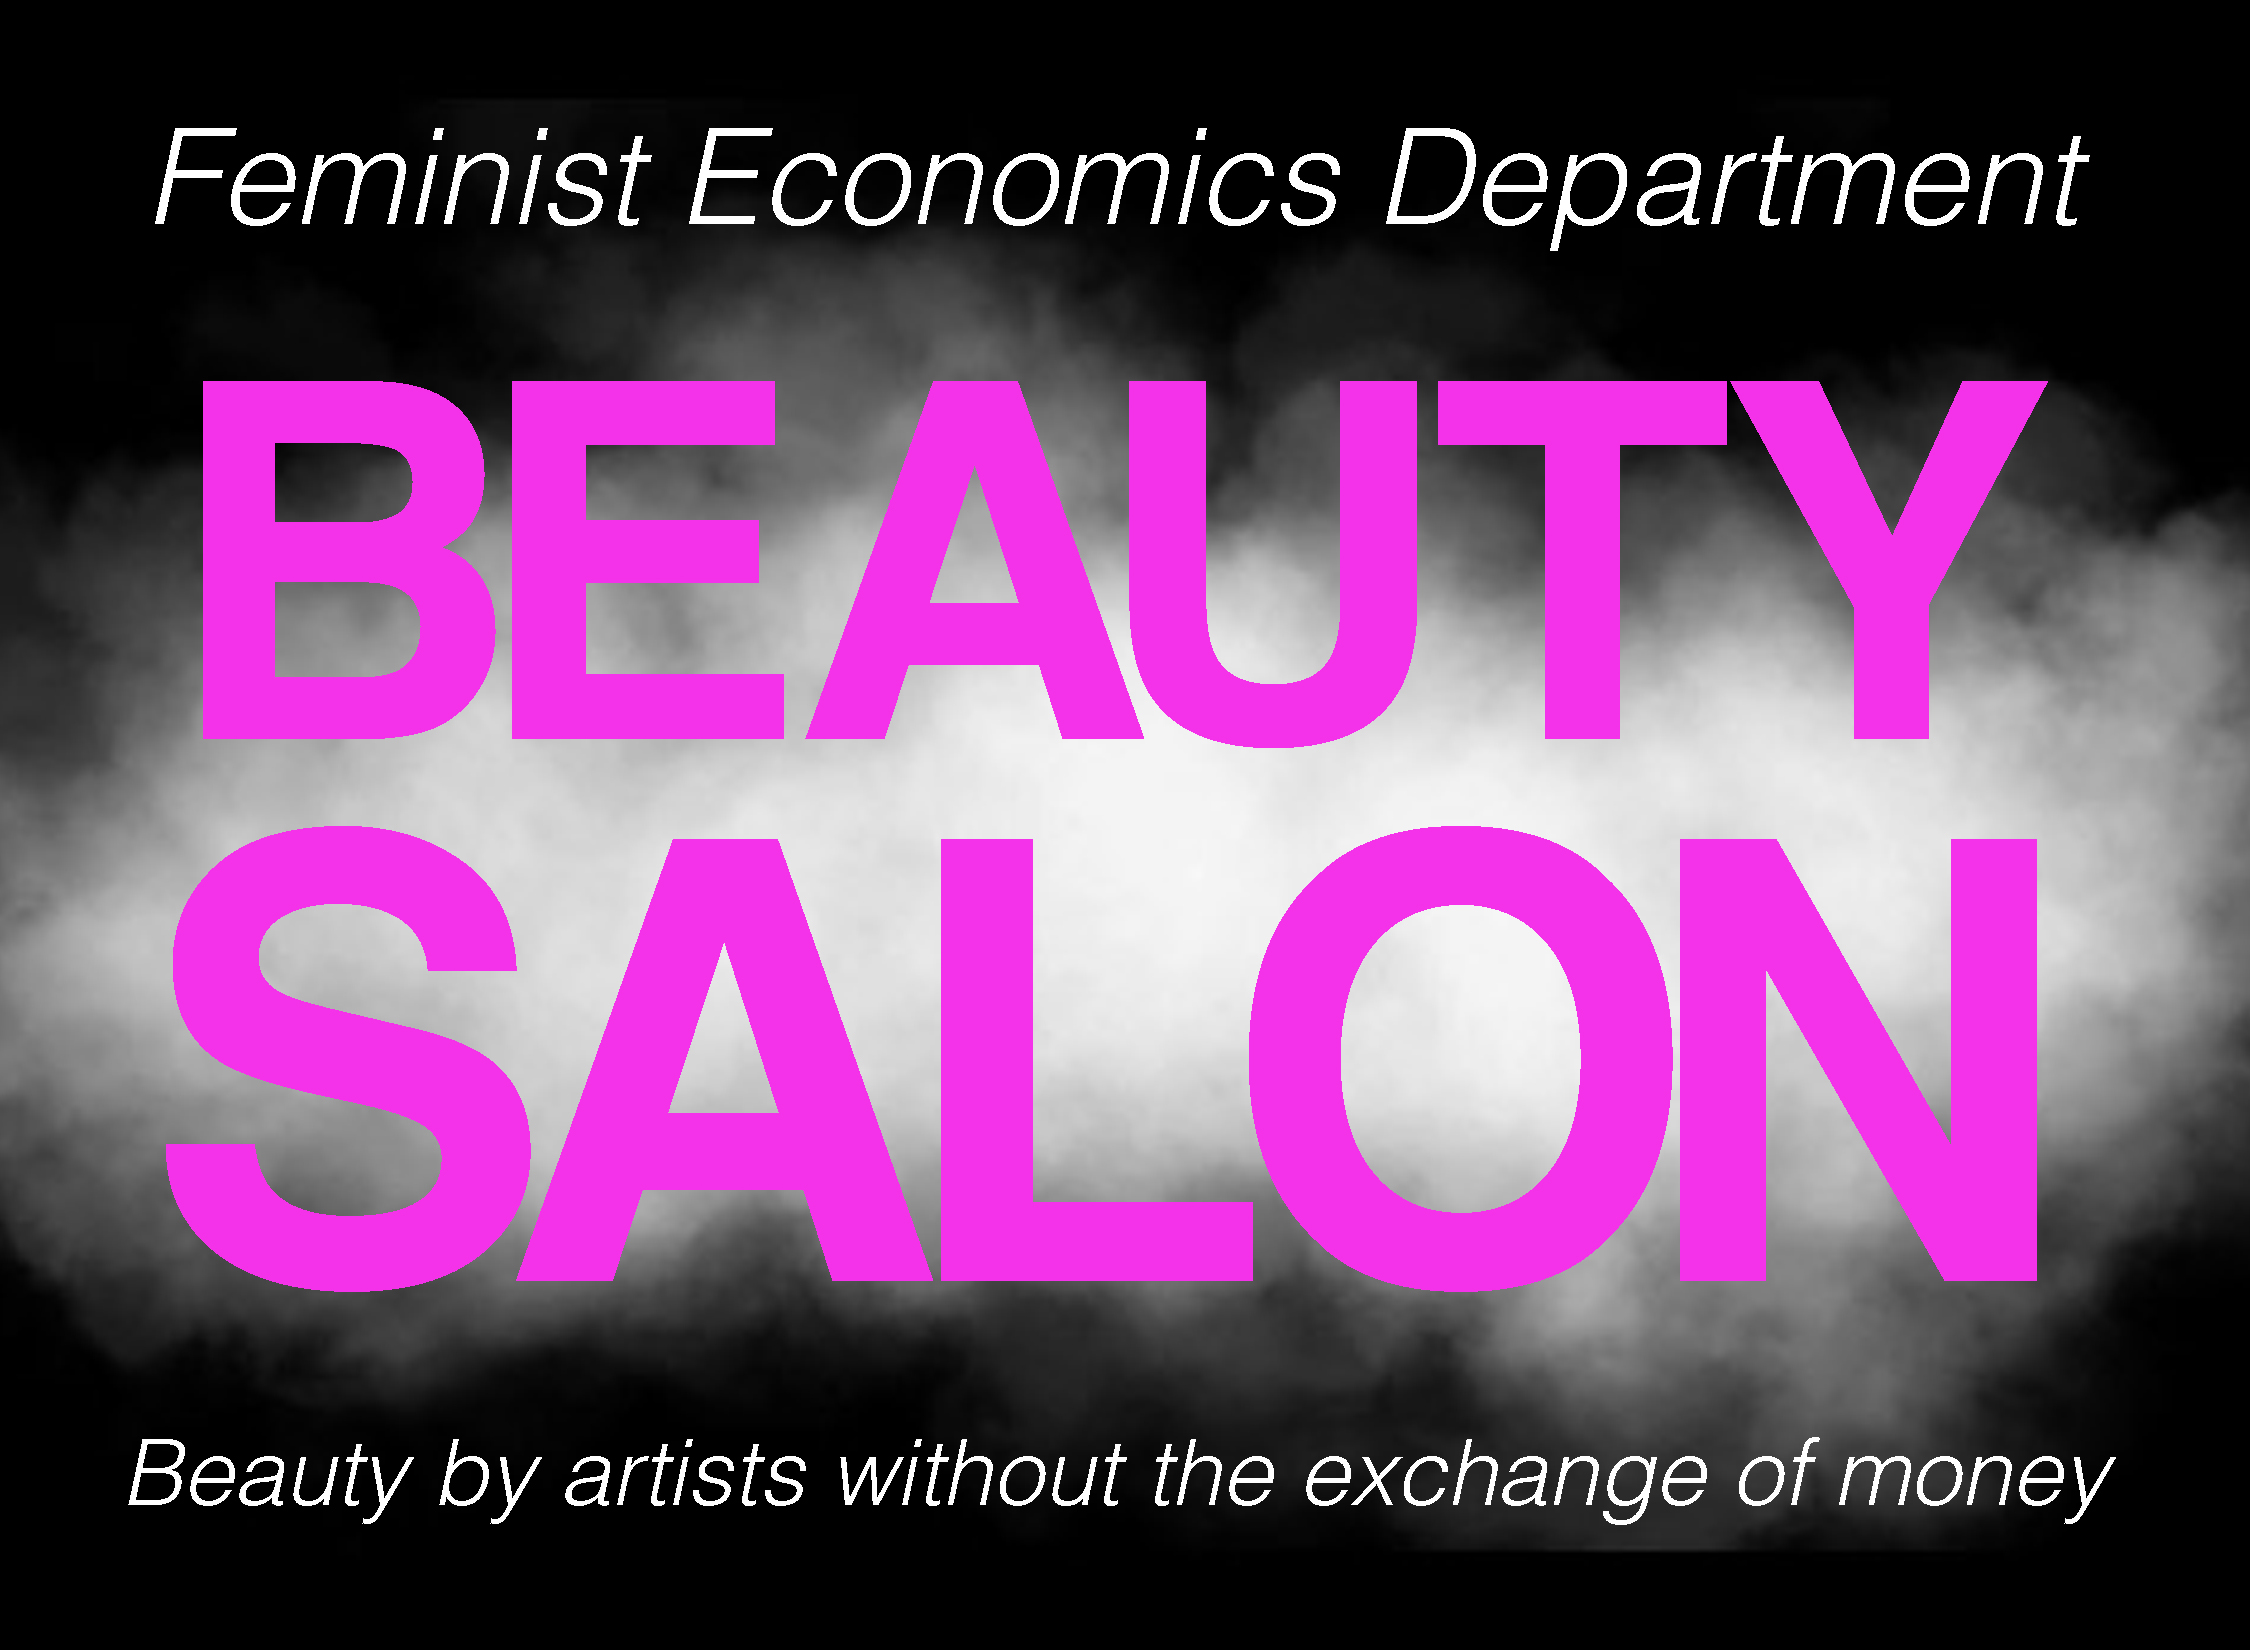 The FED Beauty Salon